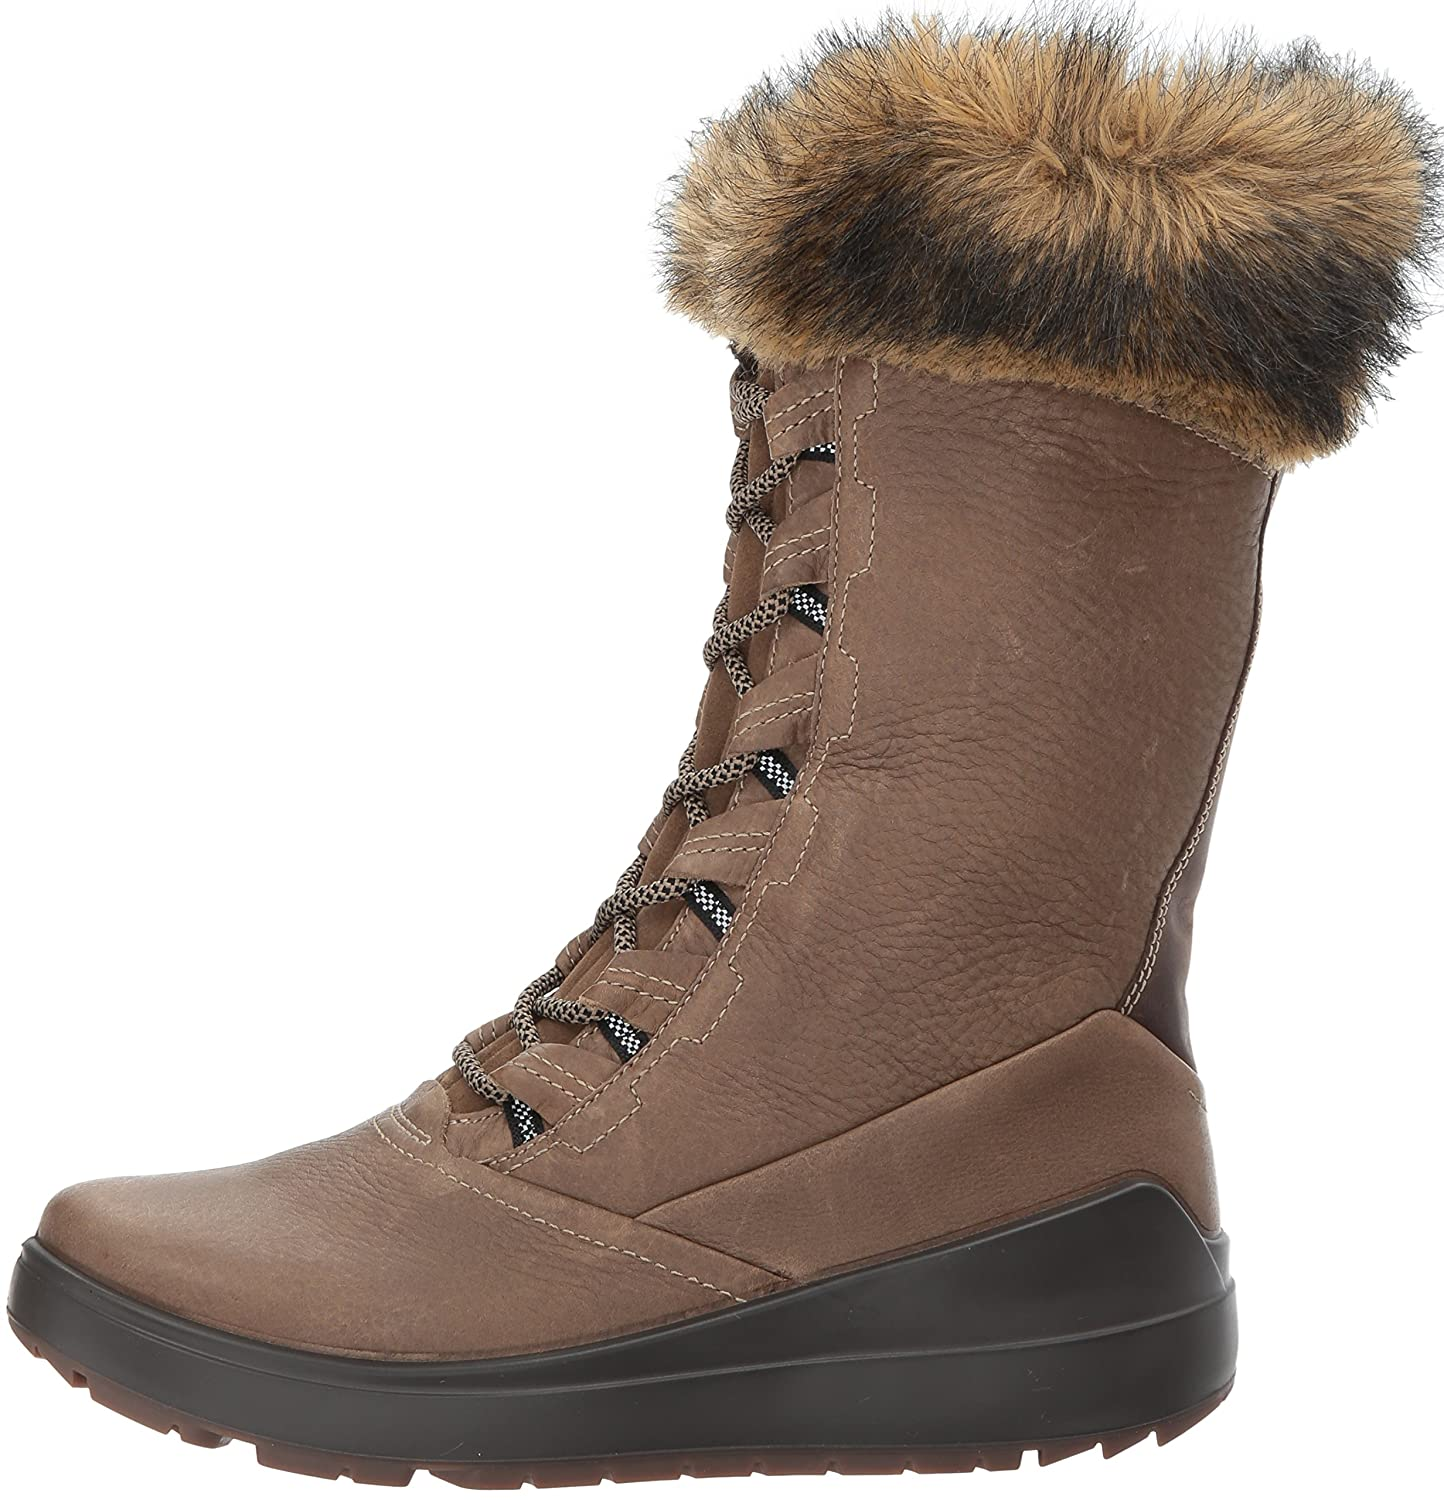 78b81fcfab ECCO Shoes Womens Noyce Tall Winter Boot Snow Boots